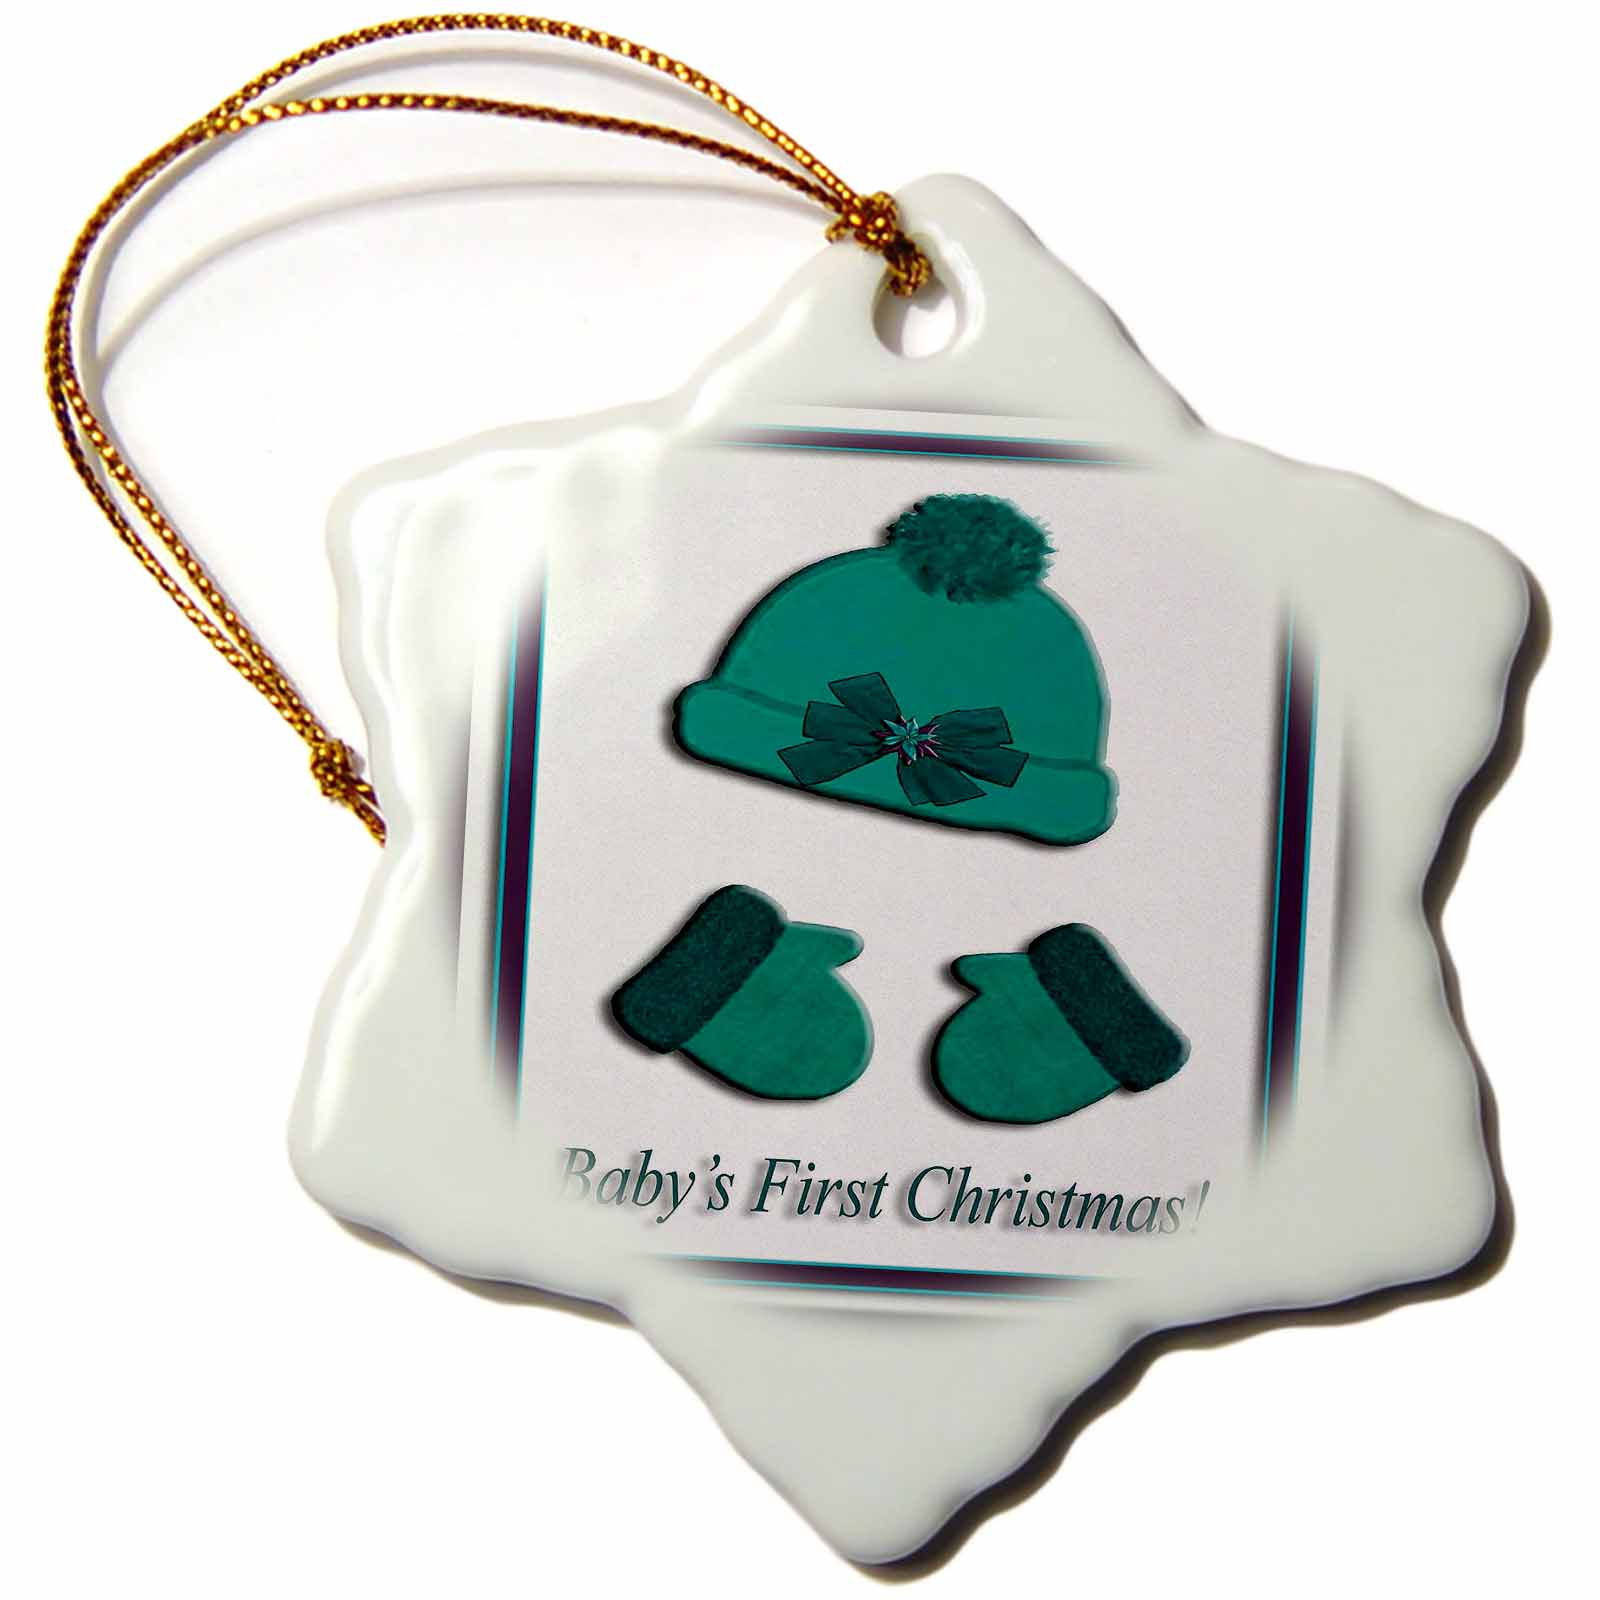 3dRose Green Cap and Mittens Babys First Christmas Poinsettia Bow, Snowflake Ornament, Porcelain, 3-inch